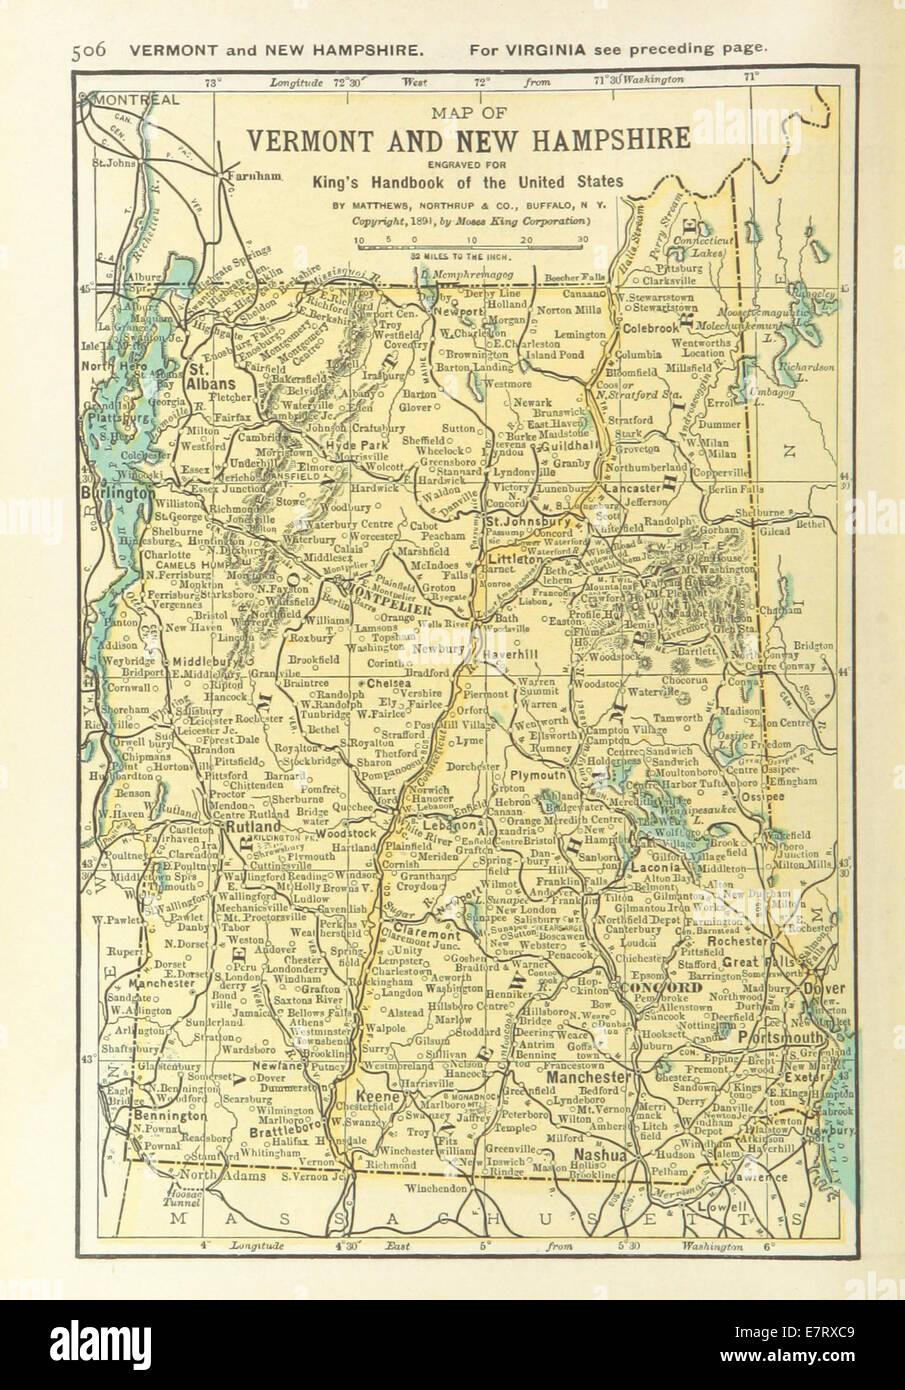 US-MAPS(1891) p508 - MAP OF VERMONT AND NEW HAMPSHIRE Stock Photo ...